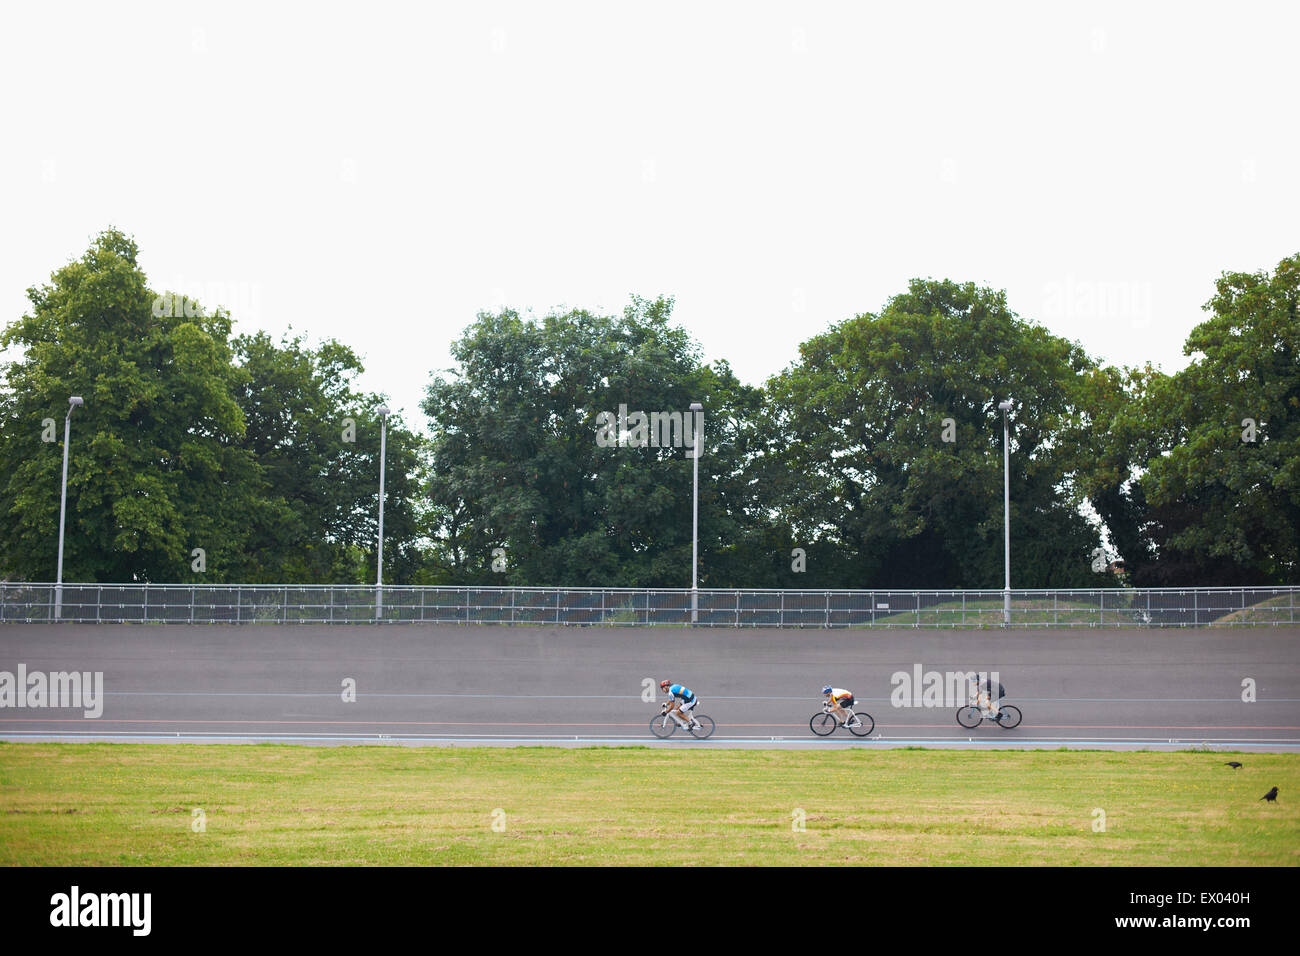 Three cyclists cycling on track at velodrome, outdoors - Stock Image